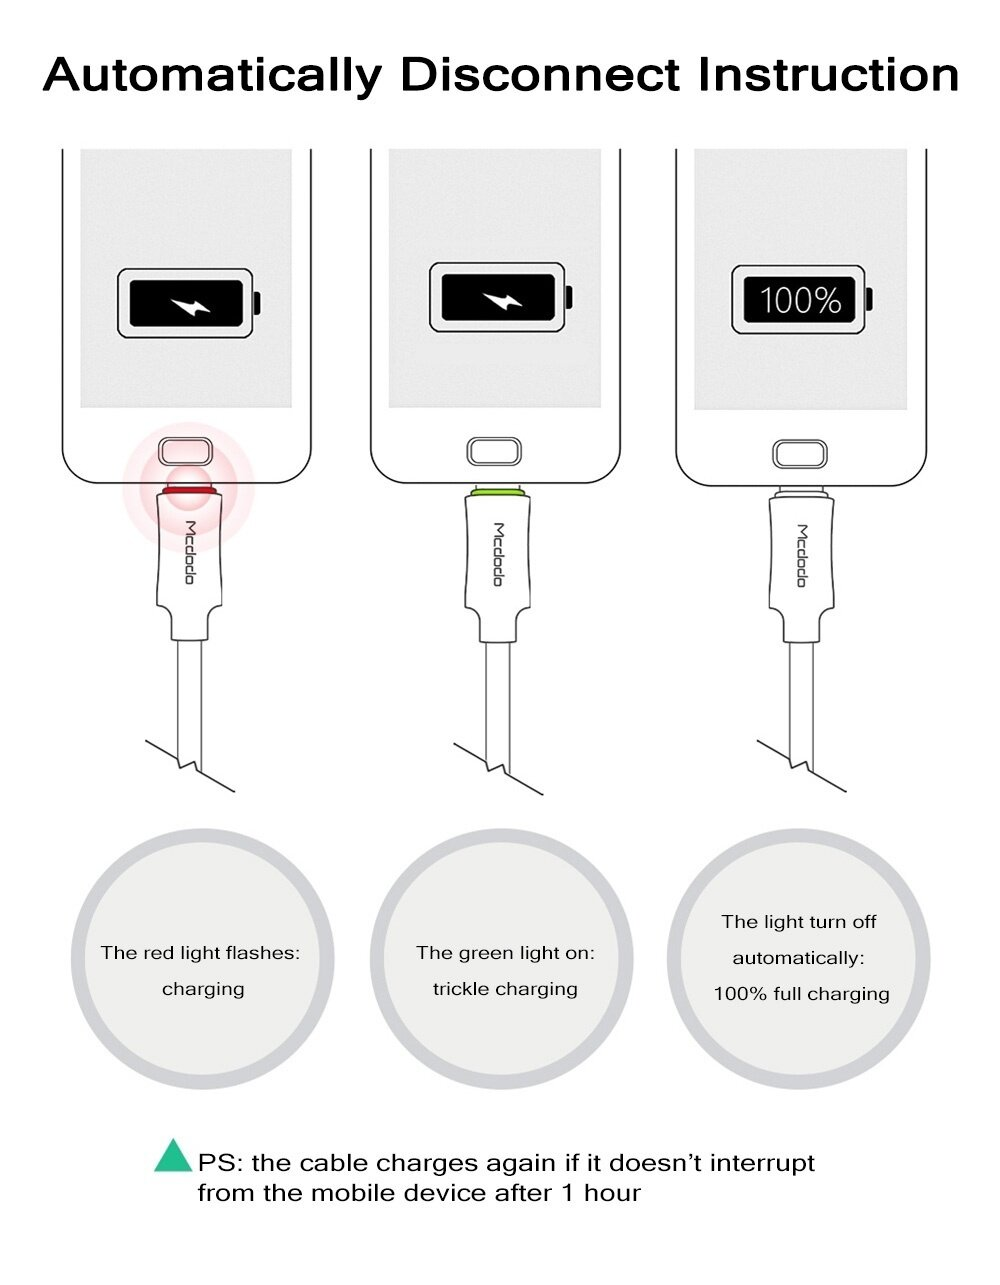 Mcdodo Ca 288 Knight Type C Auto Disconnect Transfer Data Rexus Usb Cable Cb124m Micro 2m Fast Charging 24a Specifications